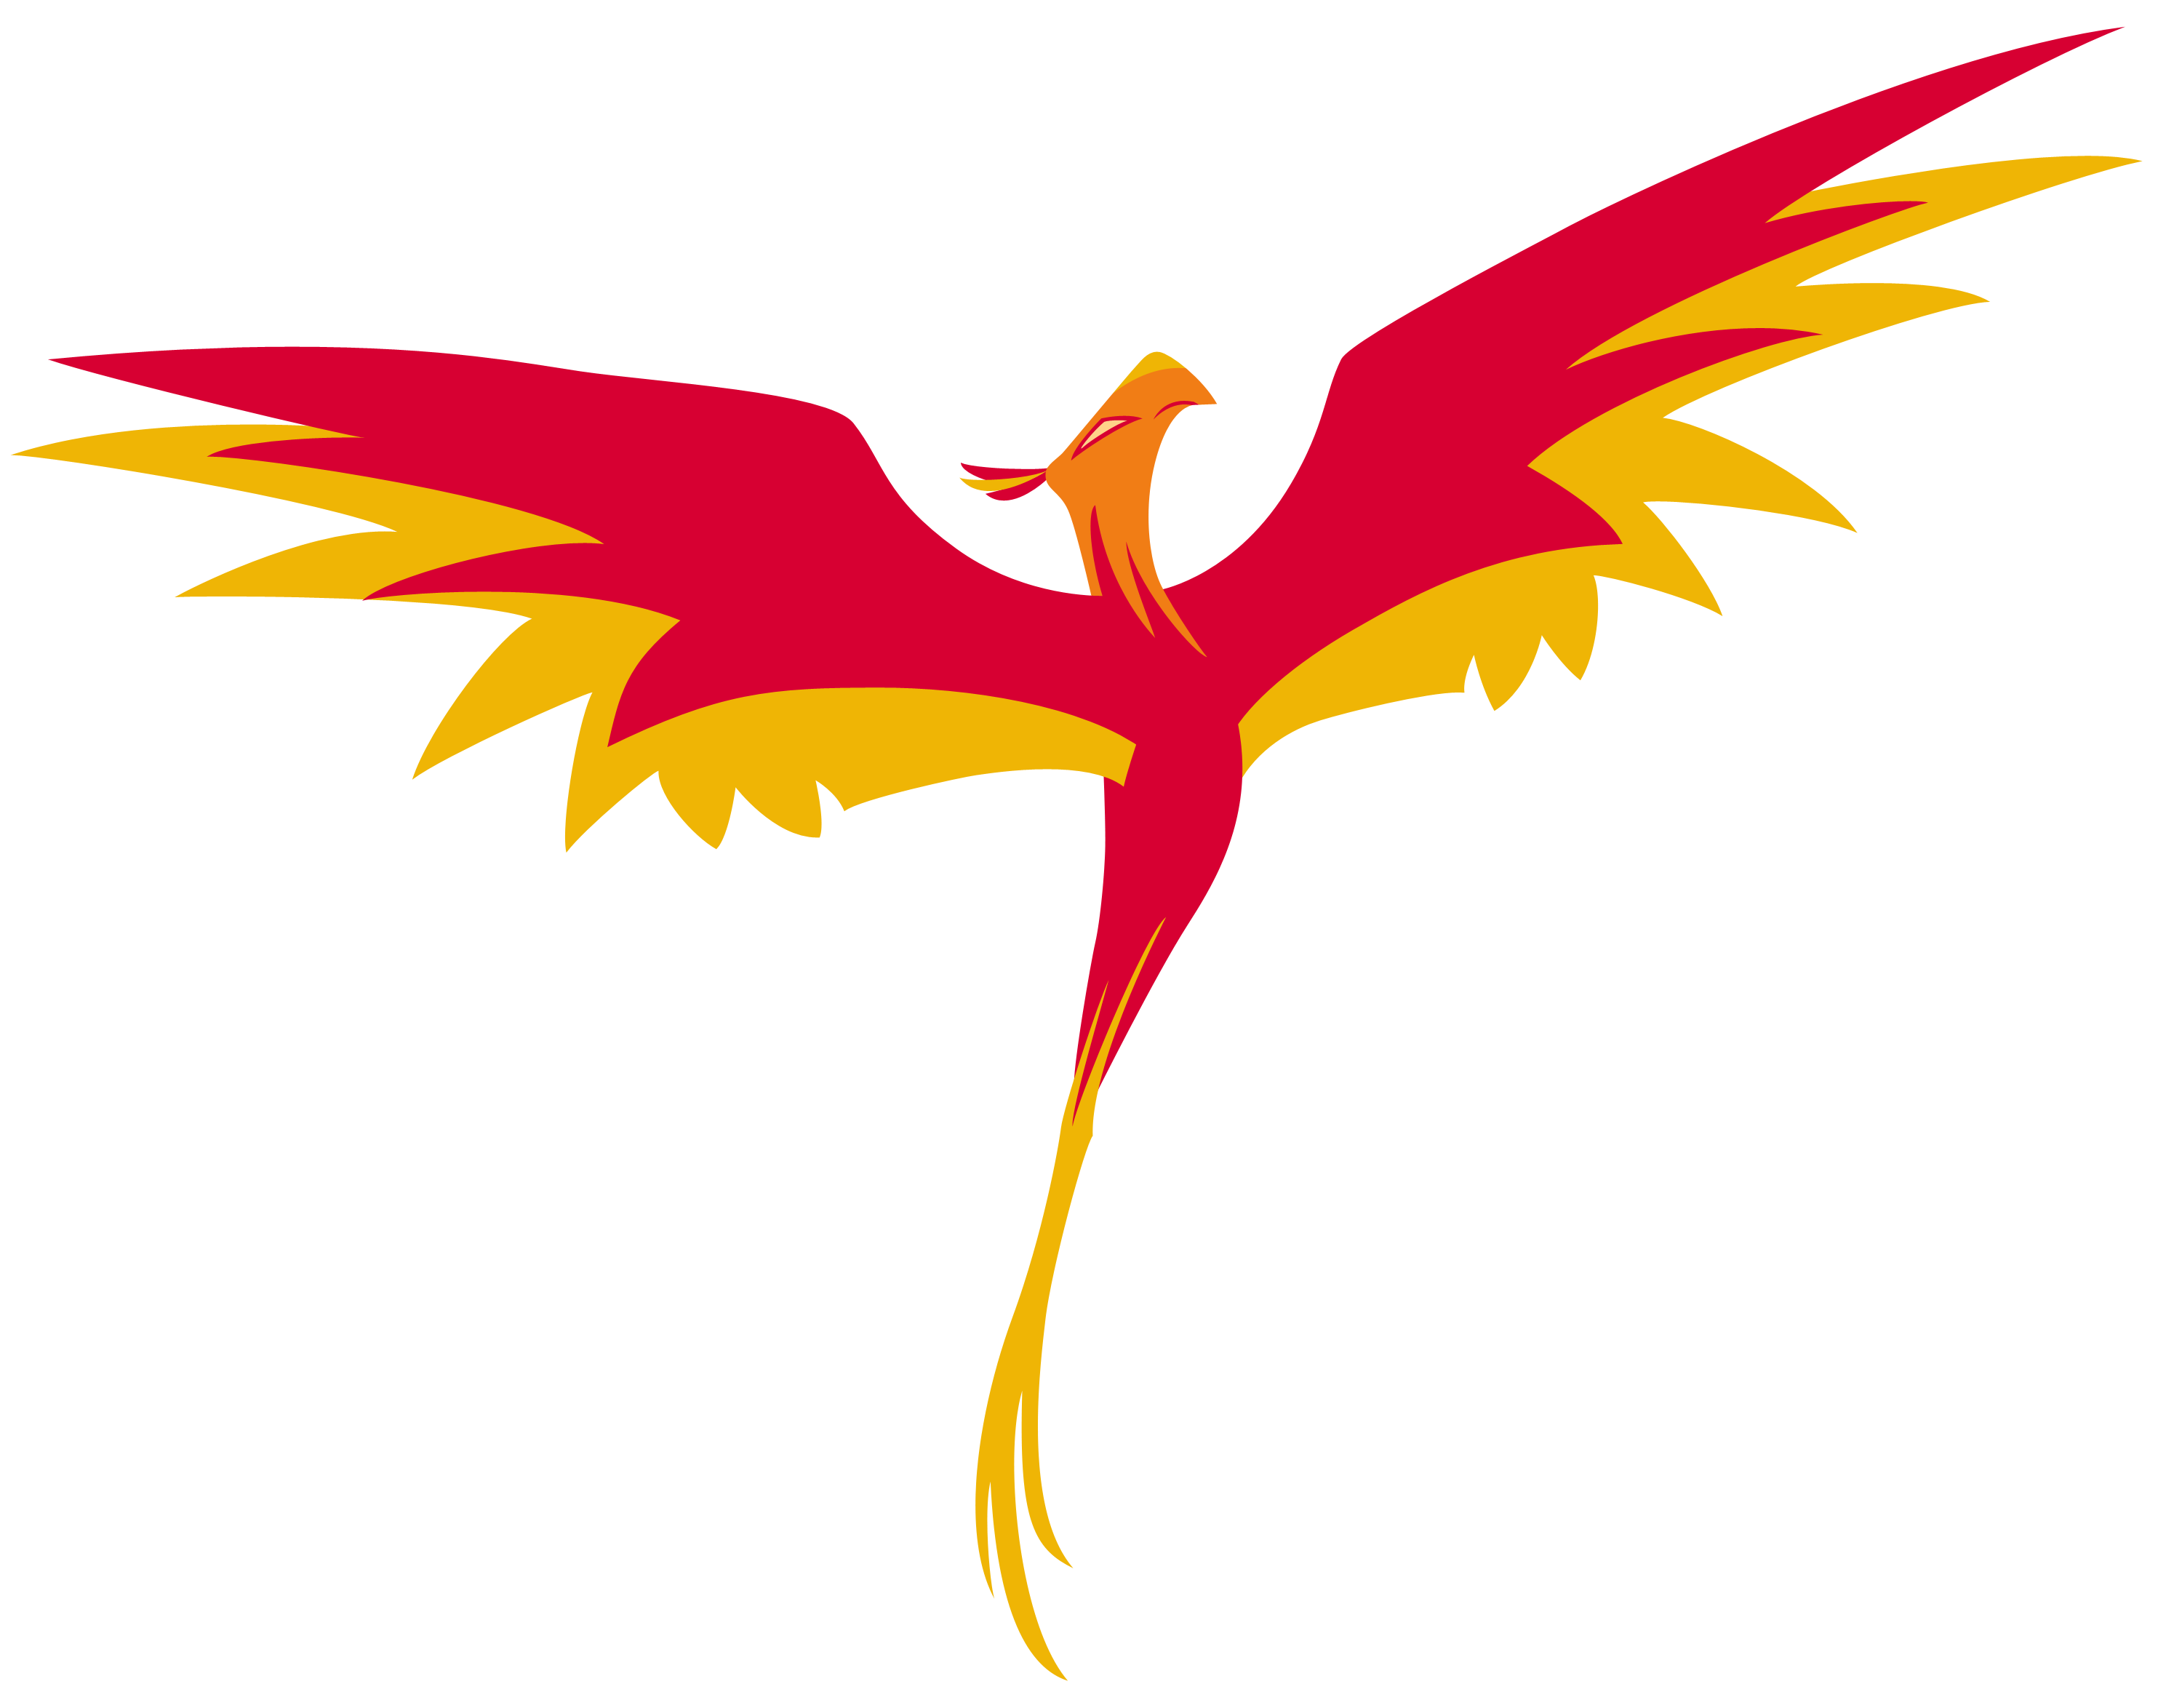 Phoenix bird png. Transparent images all picture